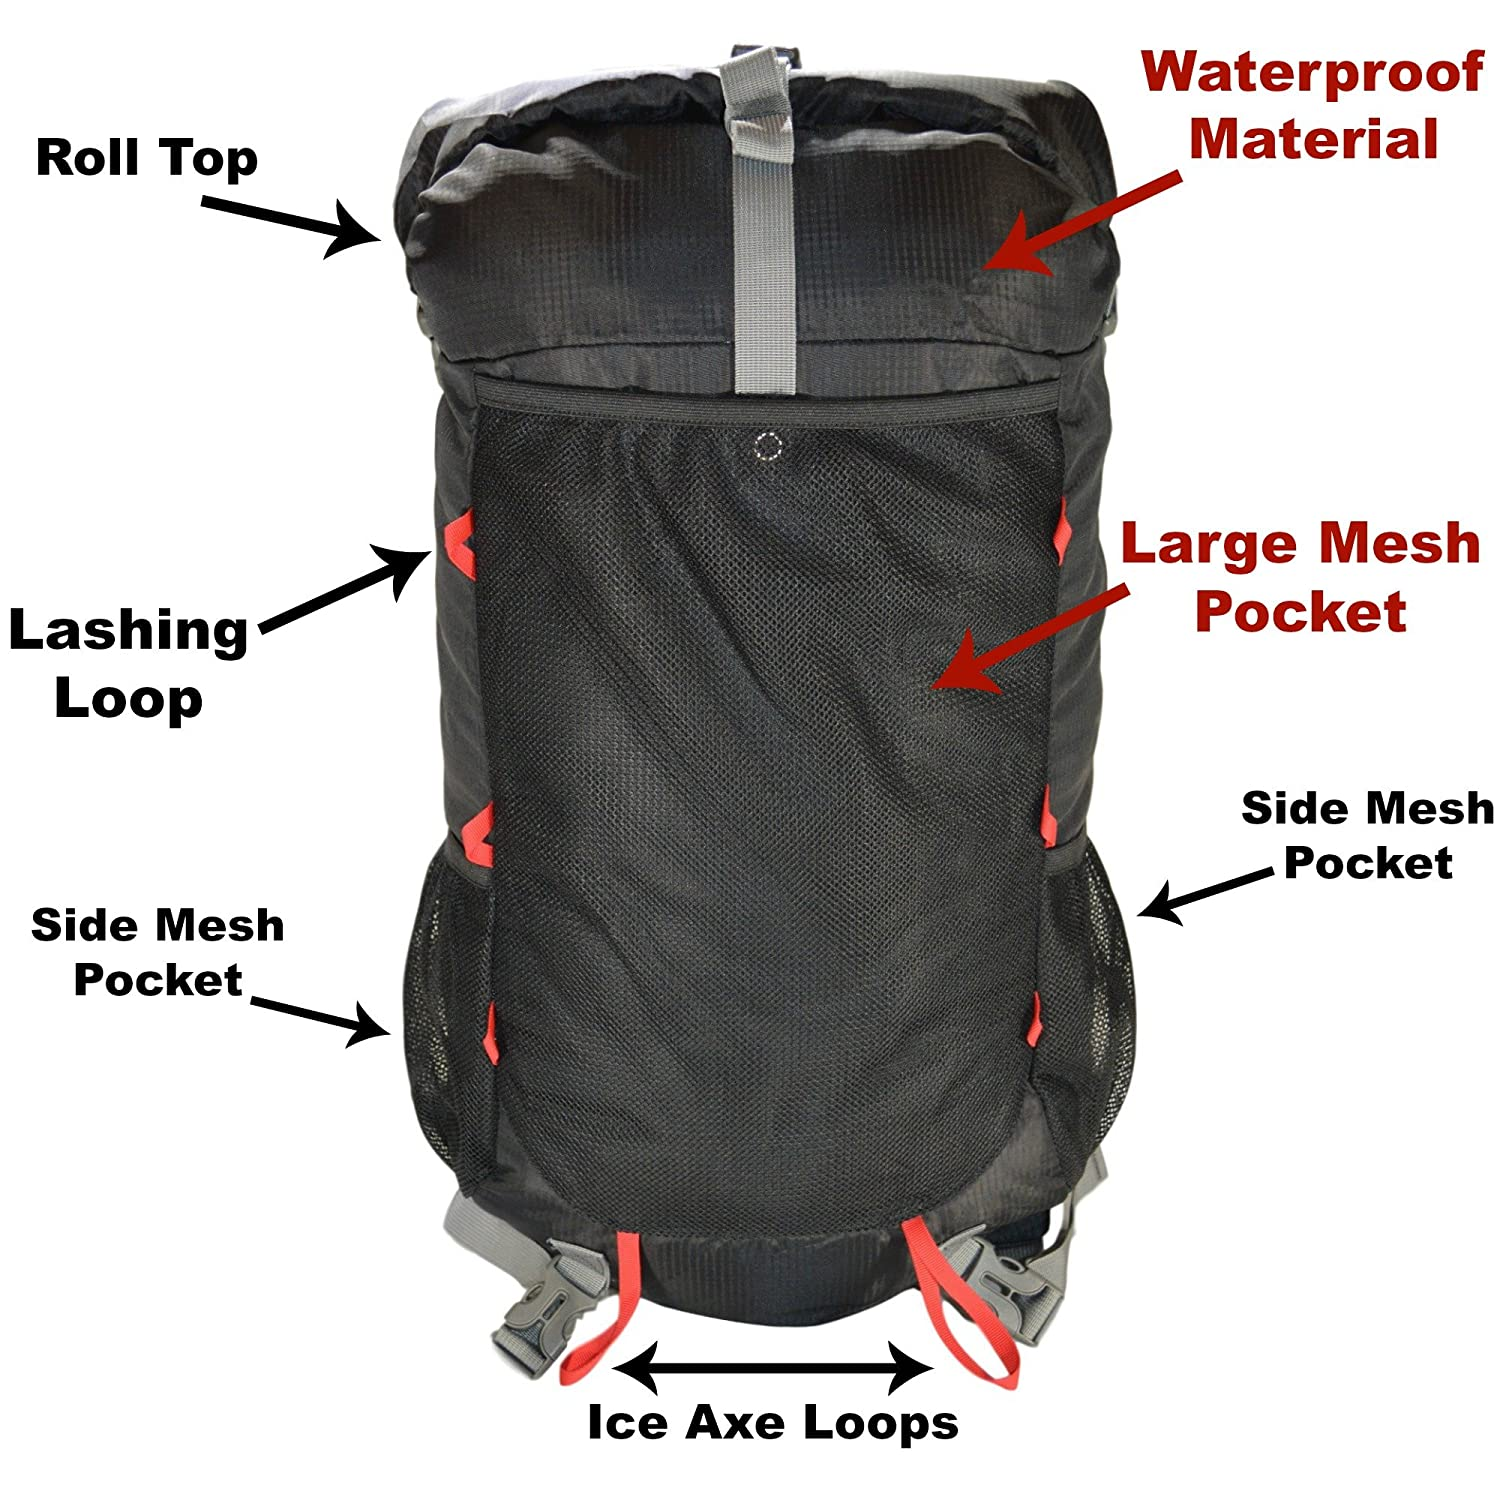 ... GoBackTrail Roll Top Black Backpack - Ultralight 25L - 40L with Removable  Internal Frame - Always The Right Size - Water Resistant - Comfortable for  Men ... 985515221119f